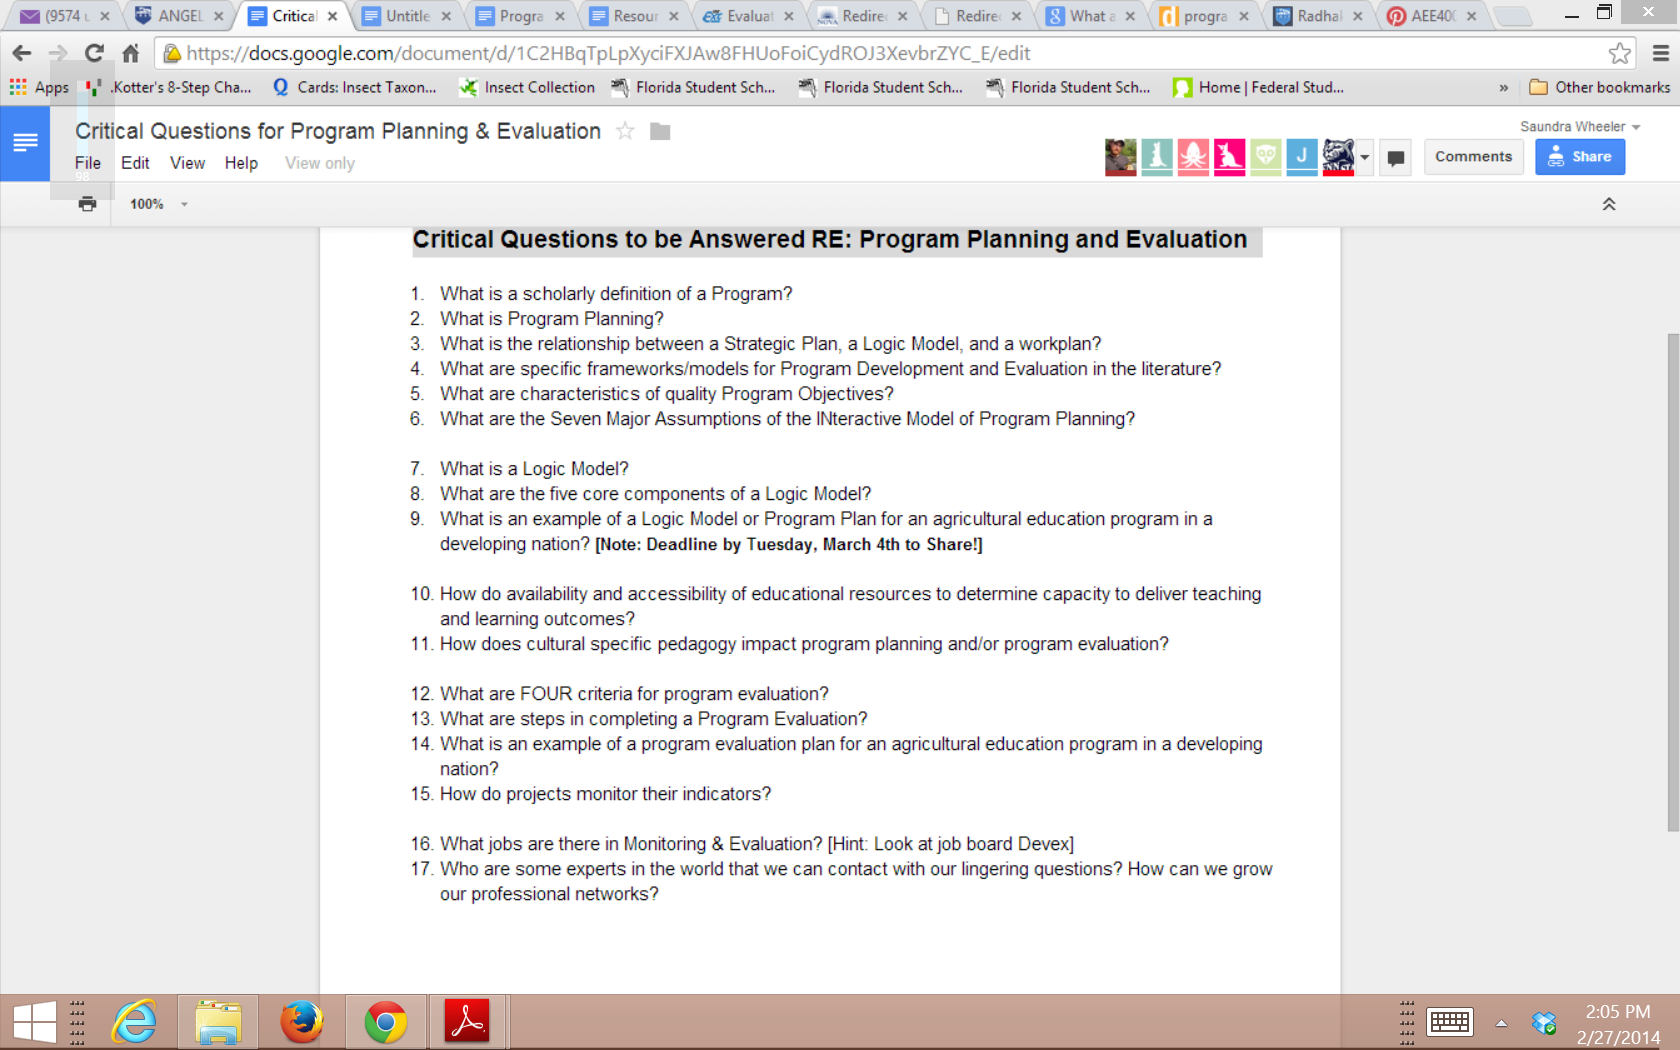 Critical Questions This Or That Questions Program Evaluation Editing Apps